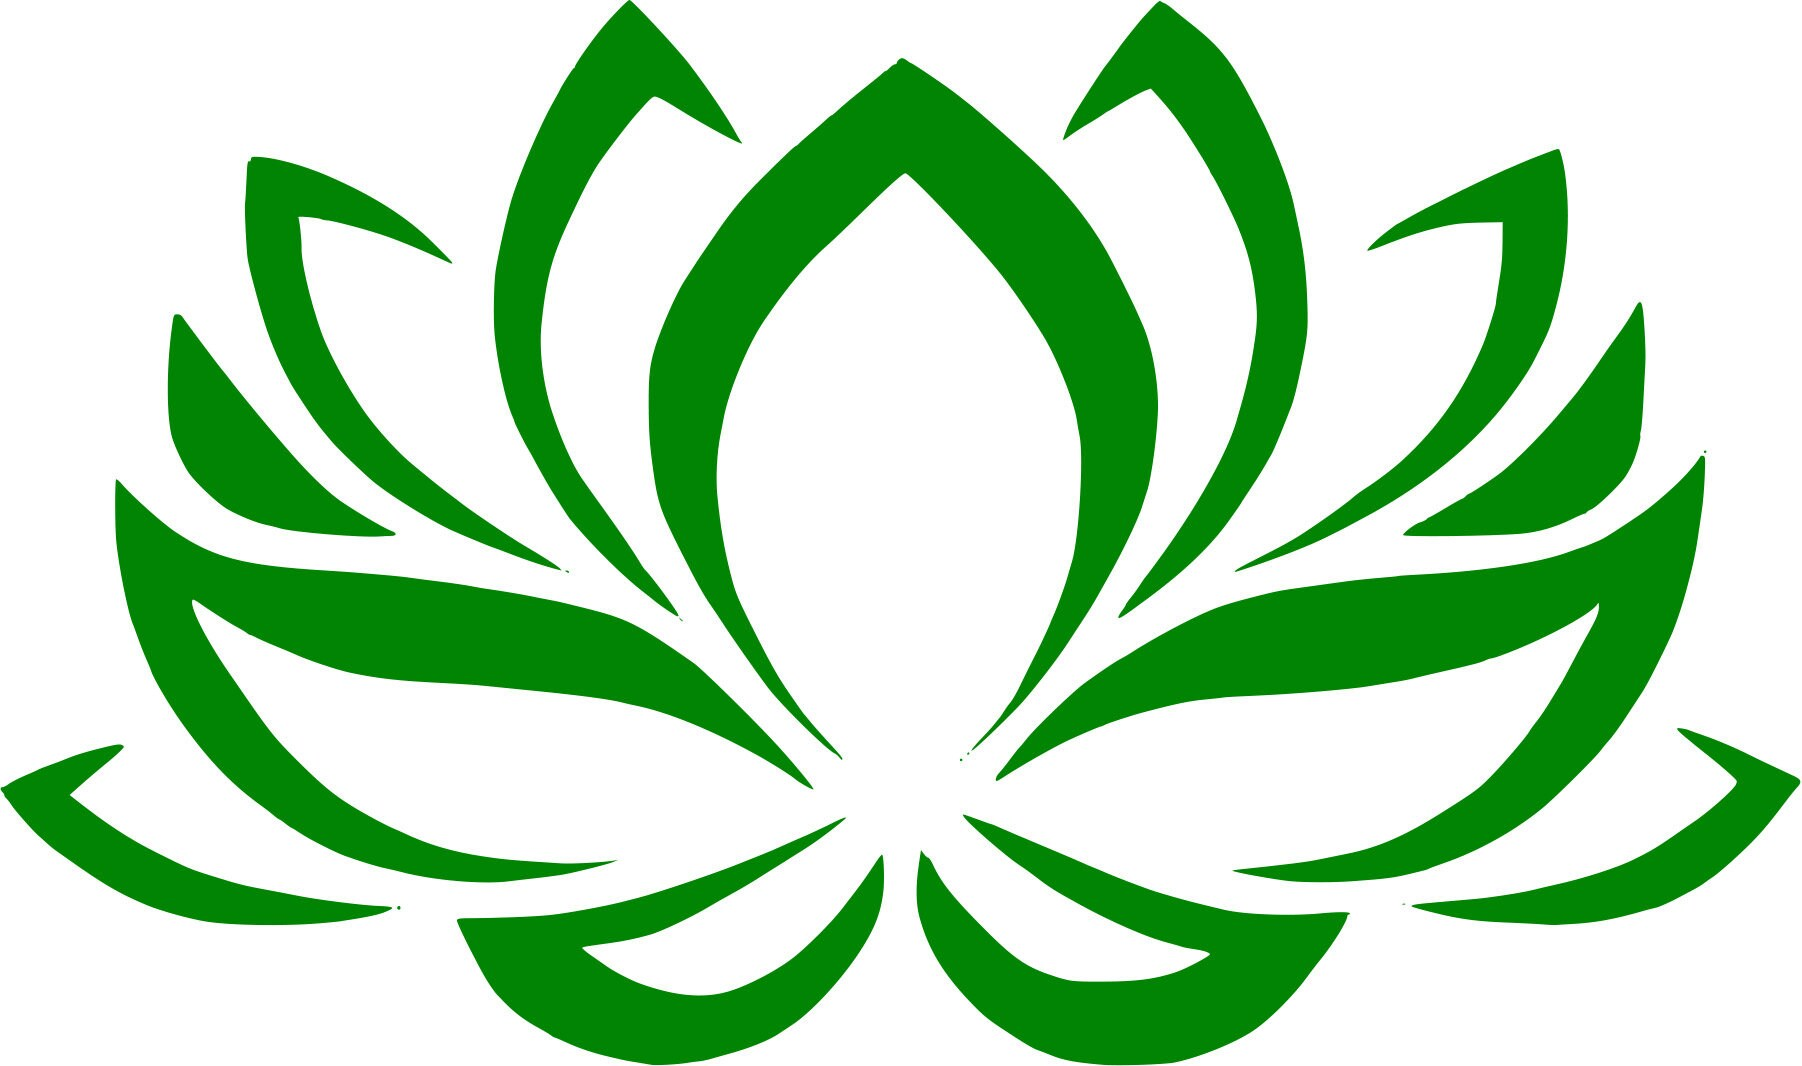 Lotus Flower Sticker Decal For Laptops Wall Decor Or Bumper Sticker